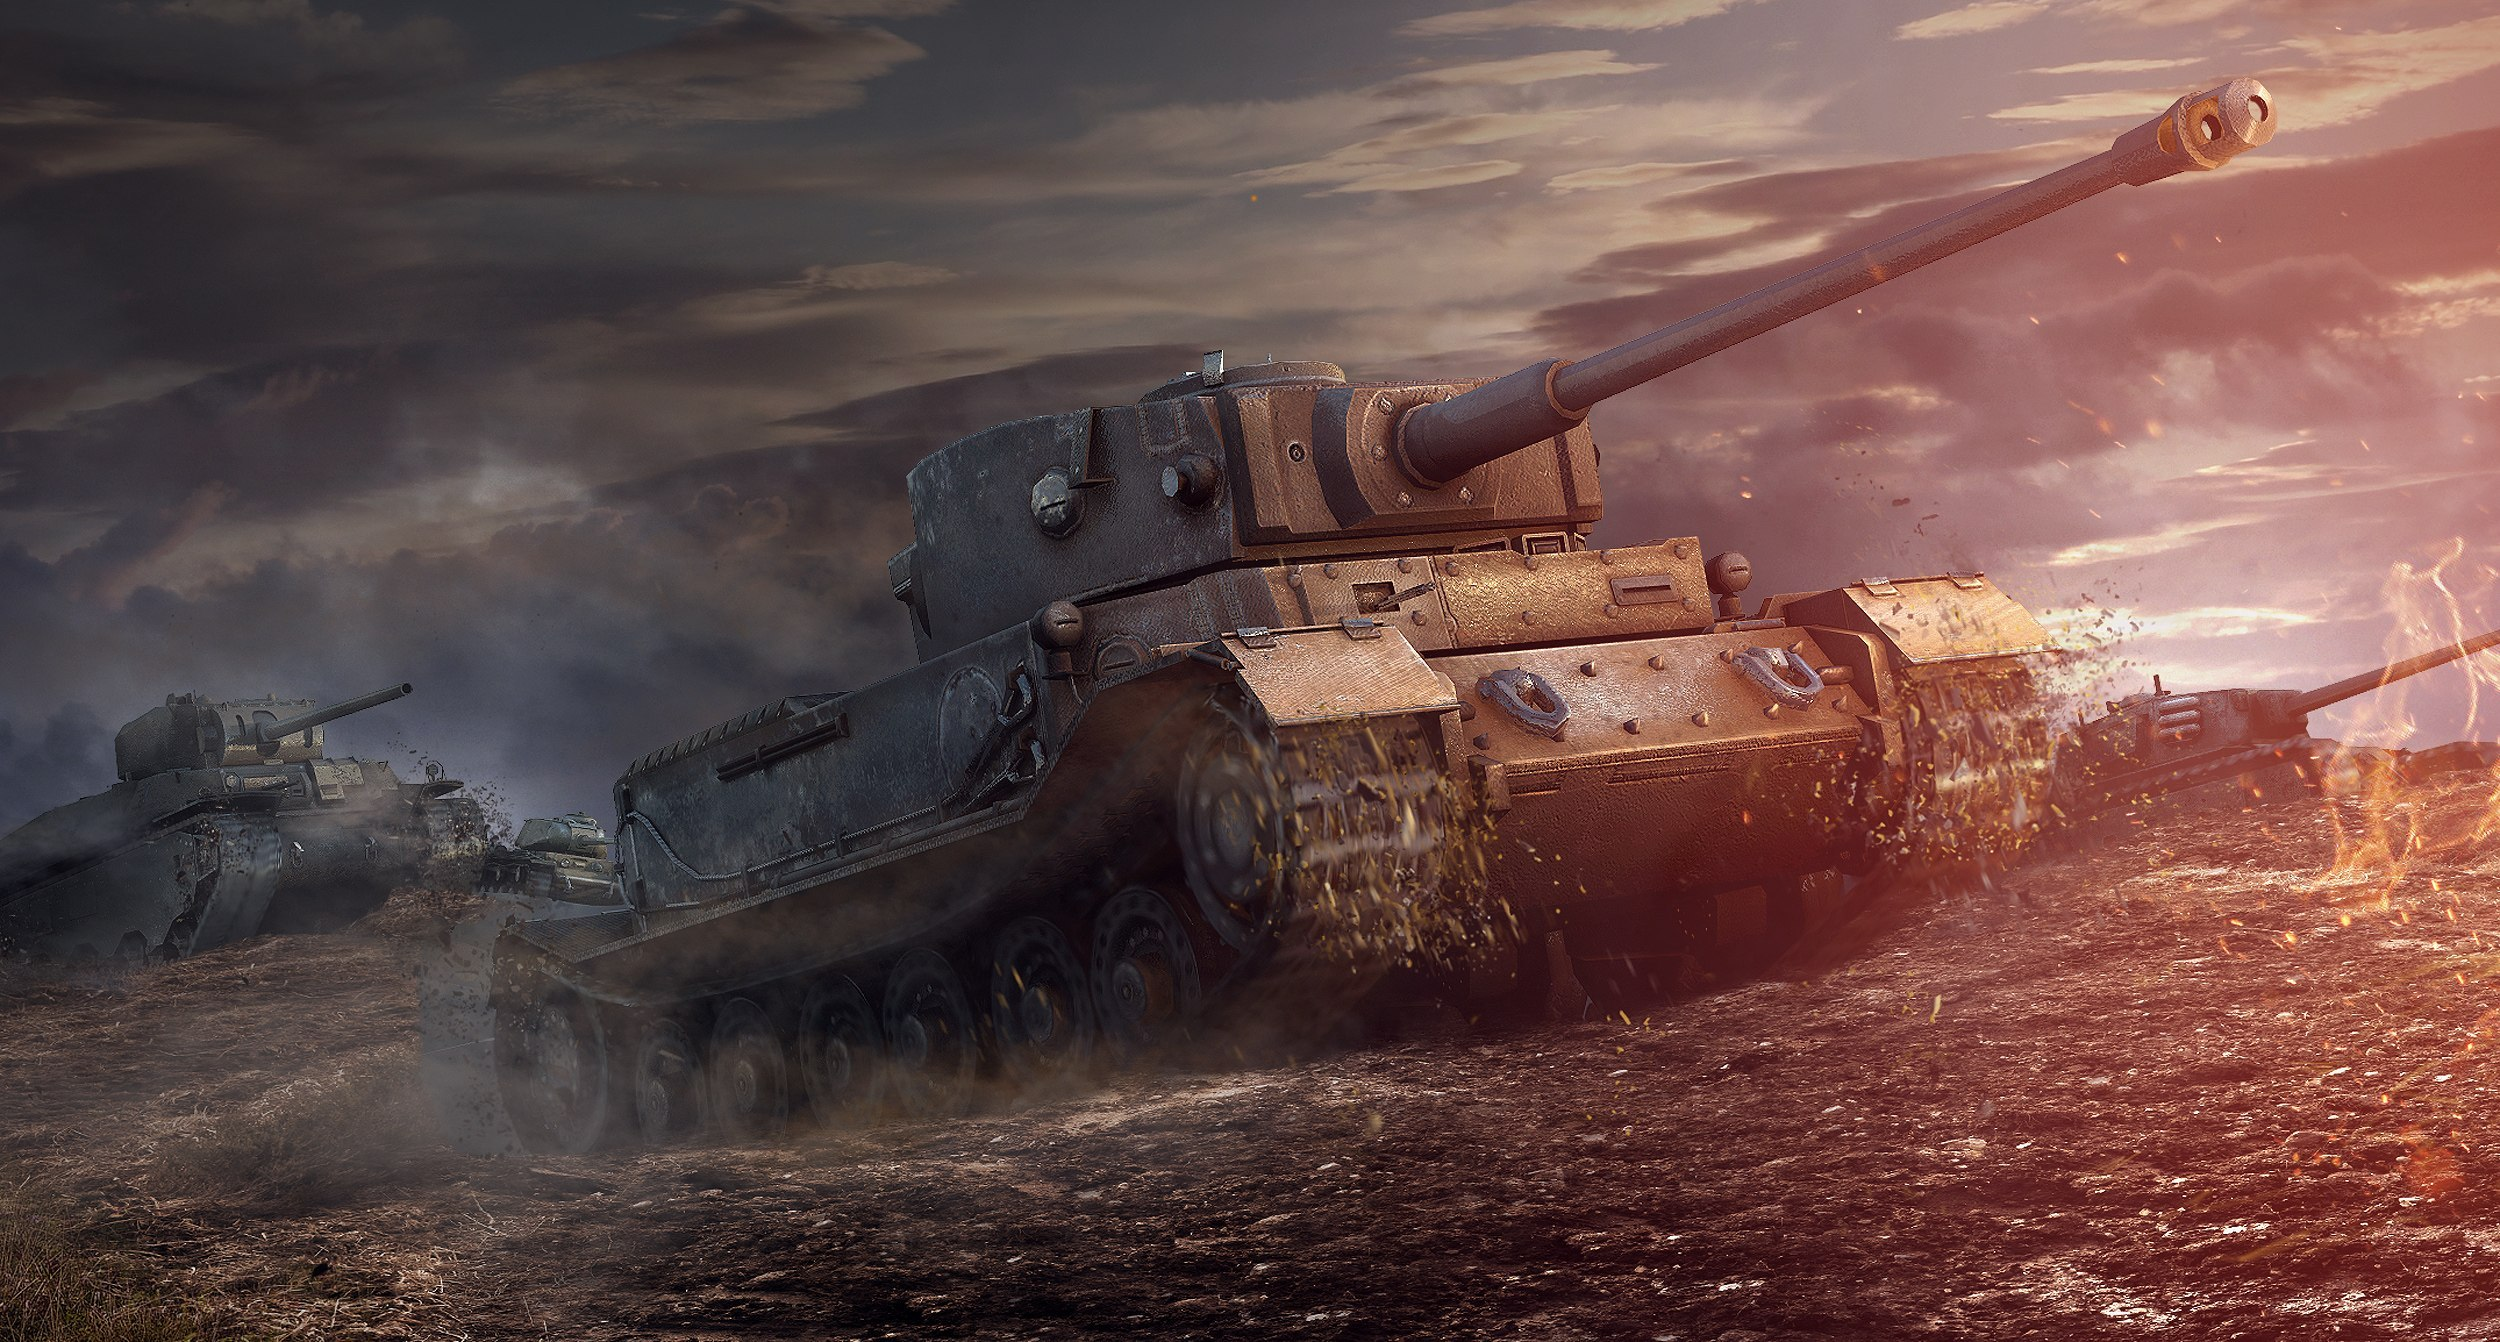 74 Tiger Tank Wallpaper On Wallpapersafari